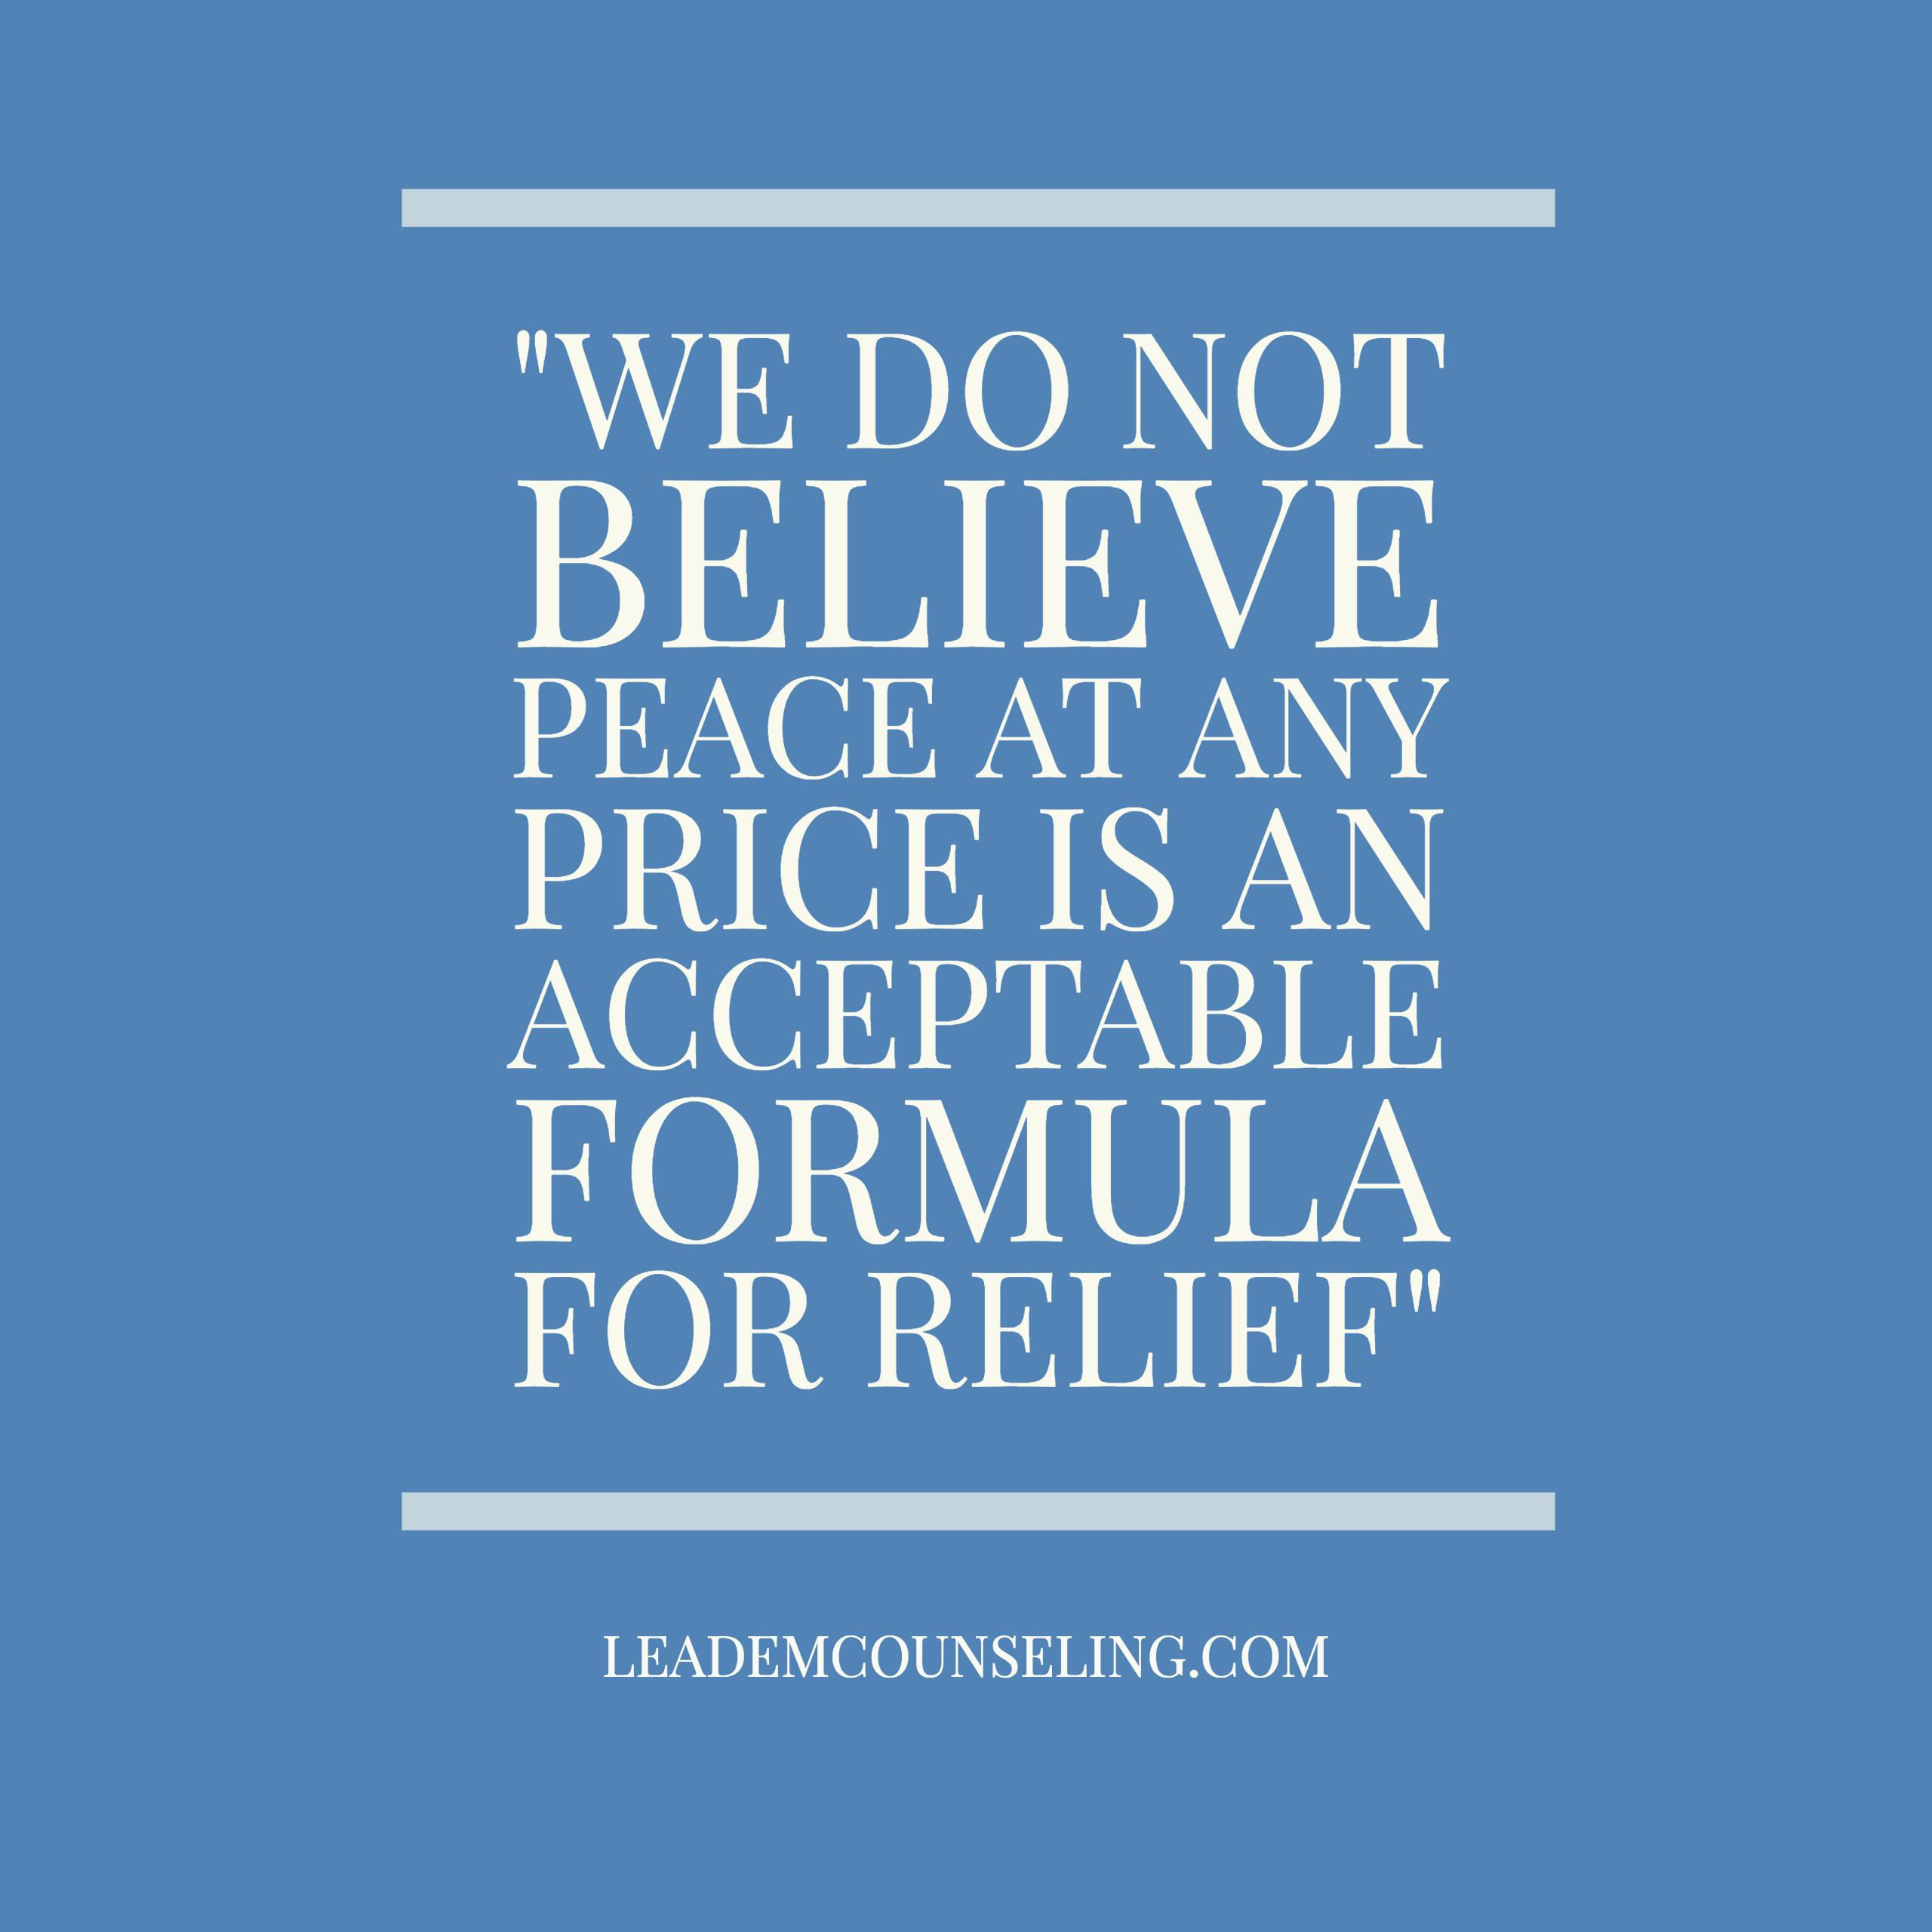 We do not believe peace at any price is an acceptable formula for relief